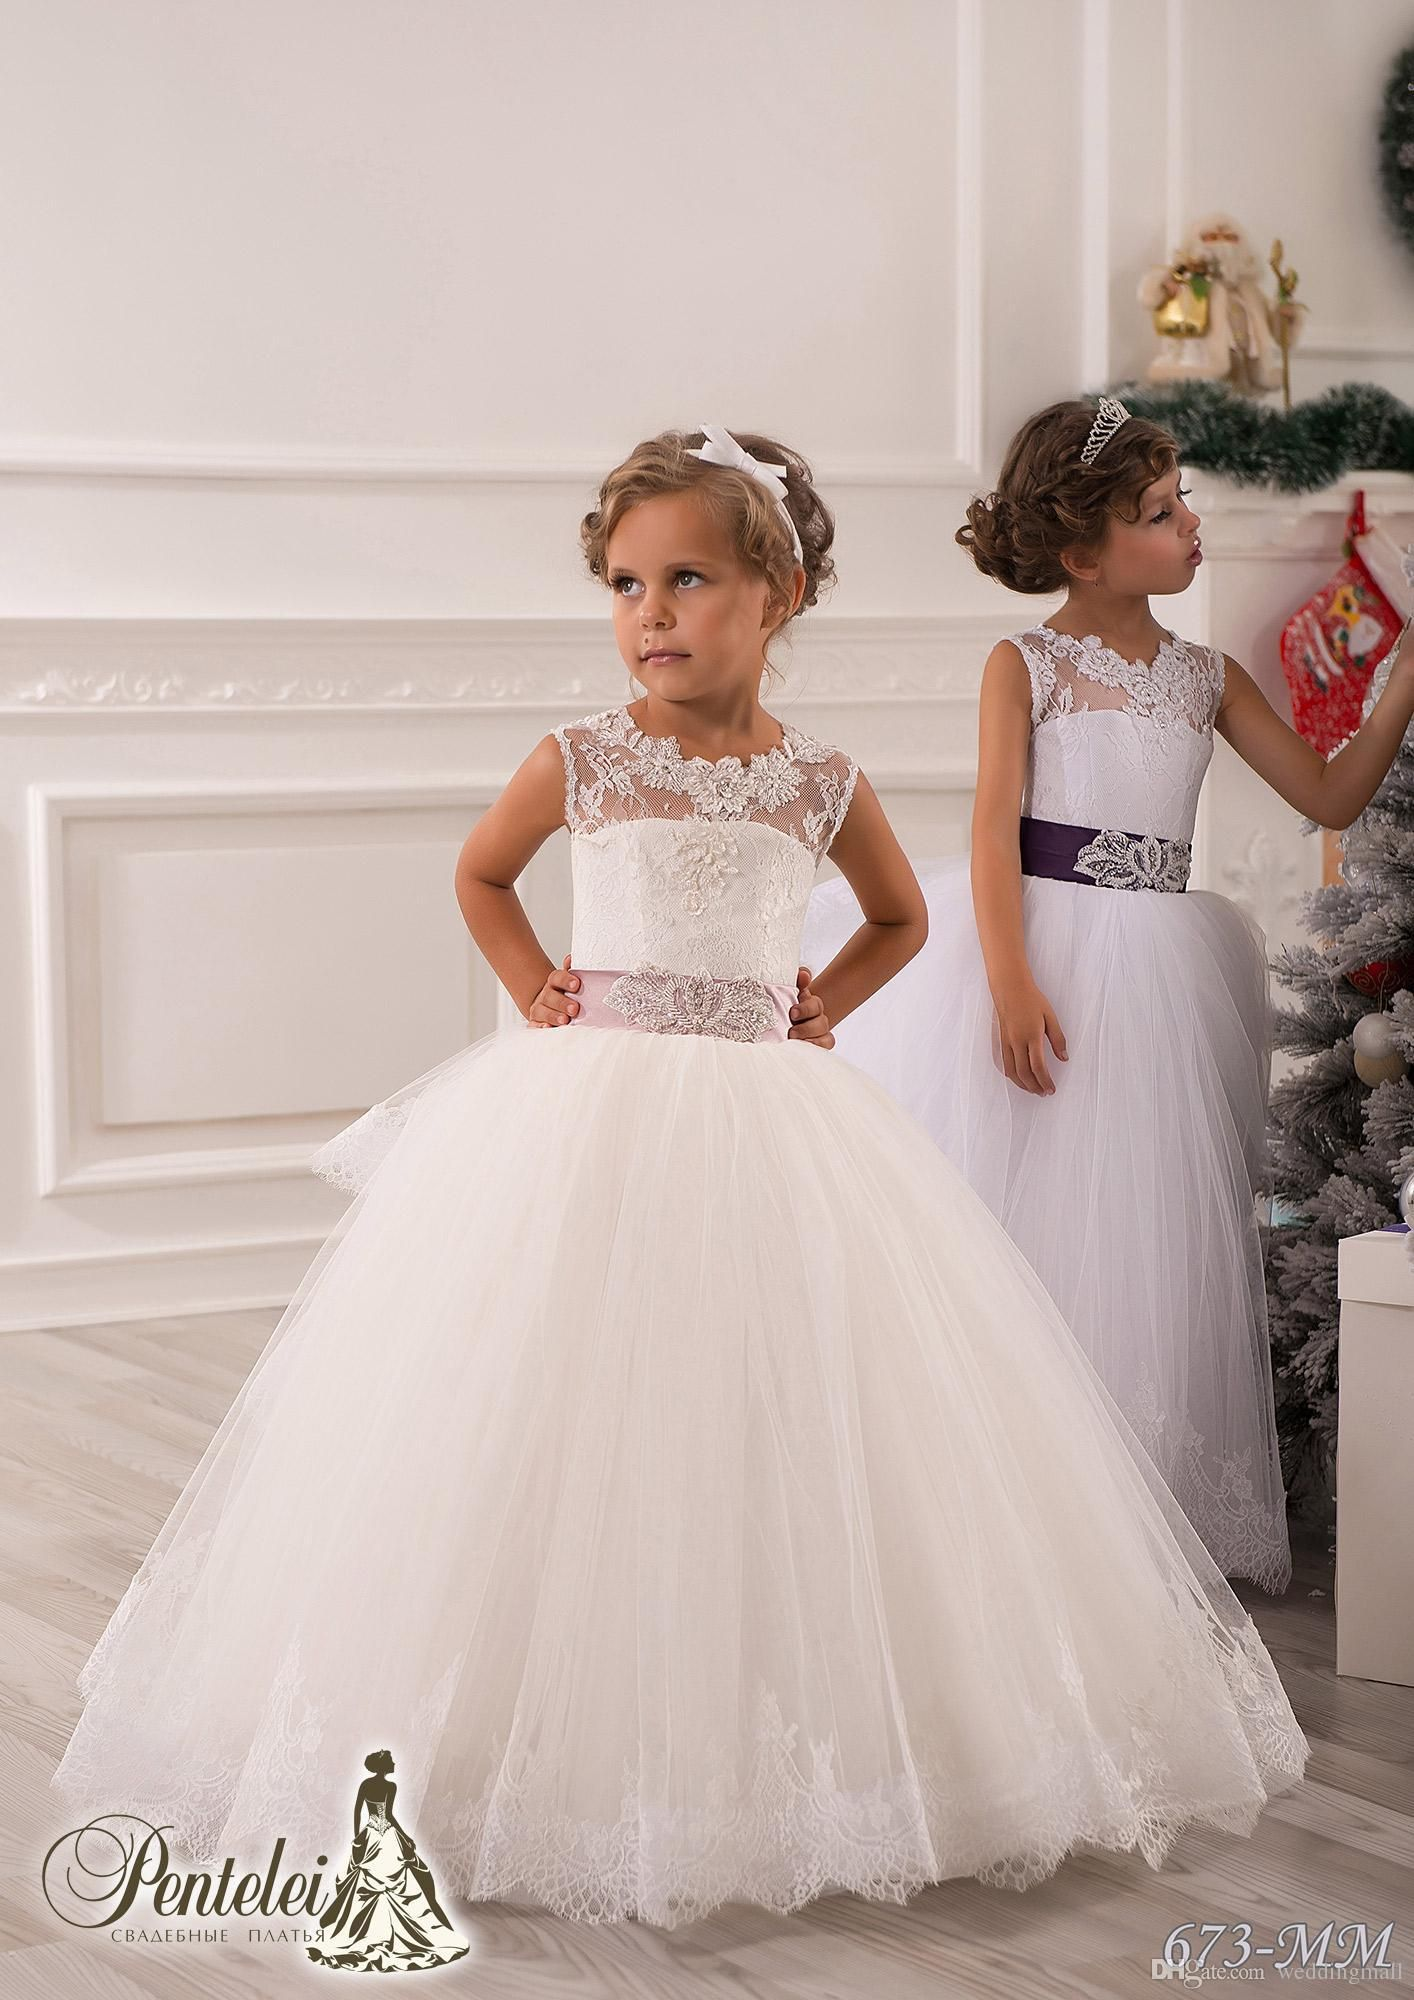 0141 Lace Crystals Sheer Neck Ball Gown Tulle Baby Girl Birthday ...